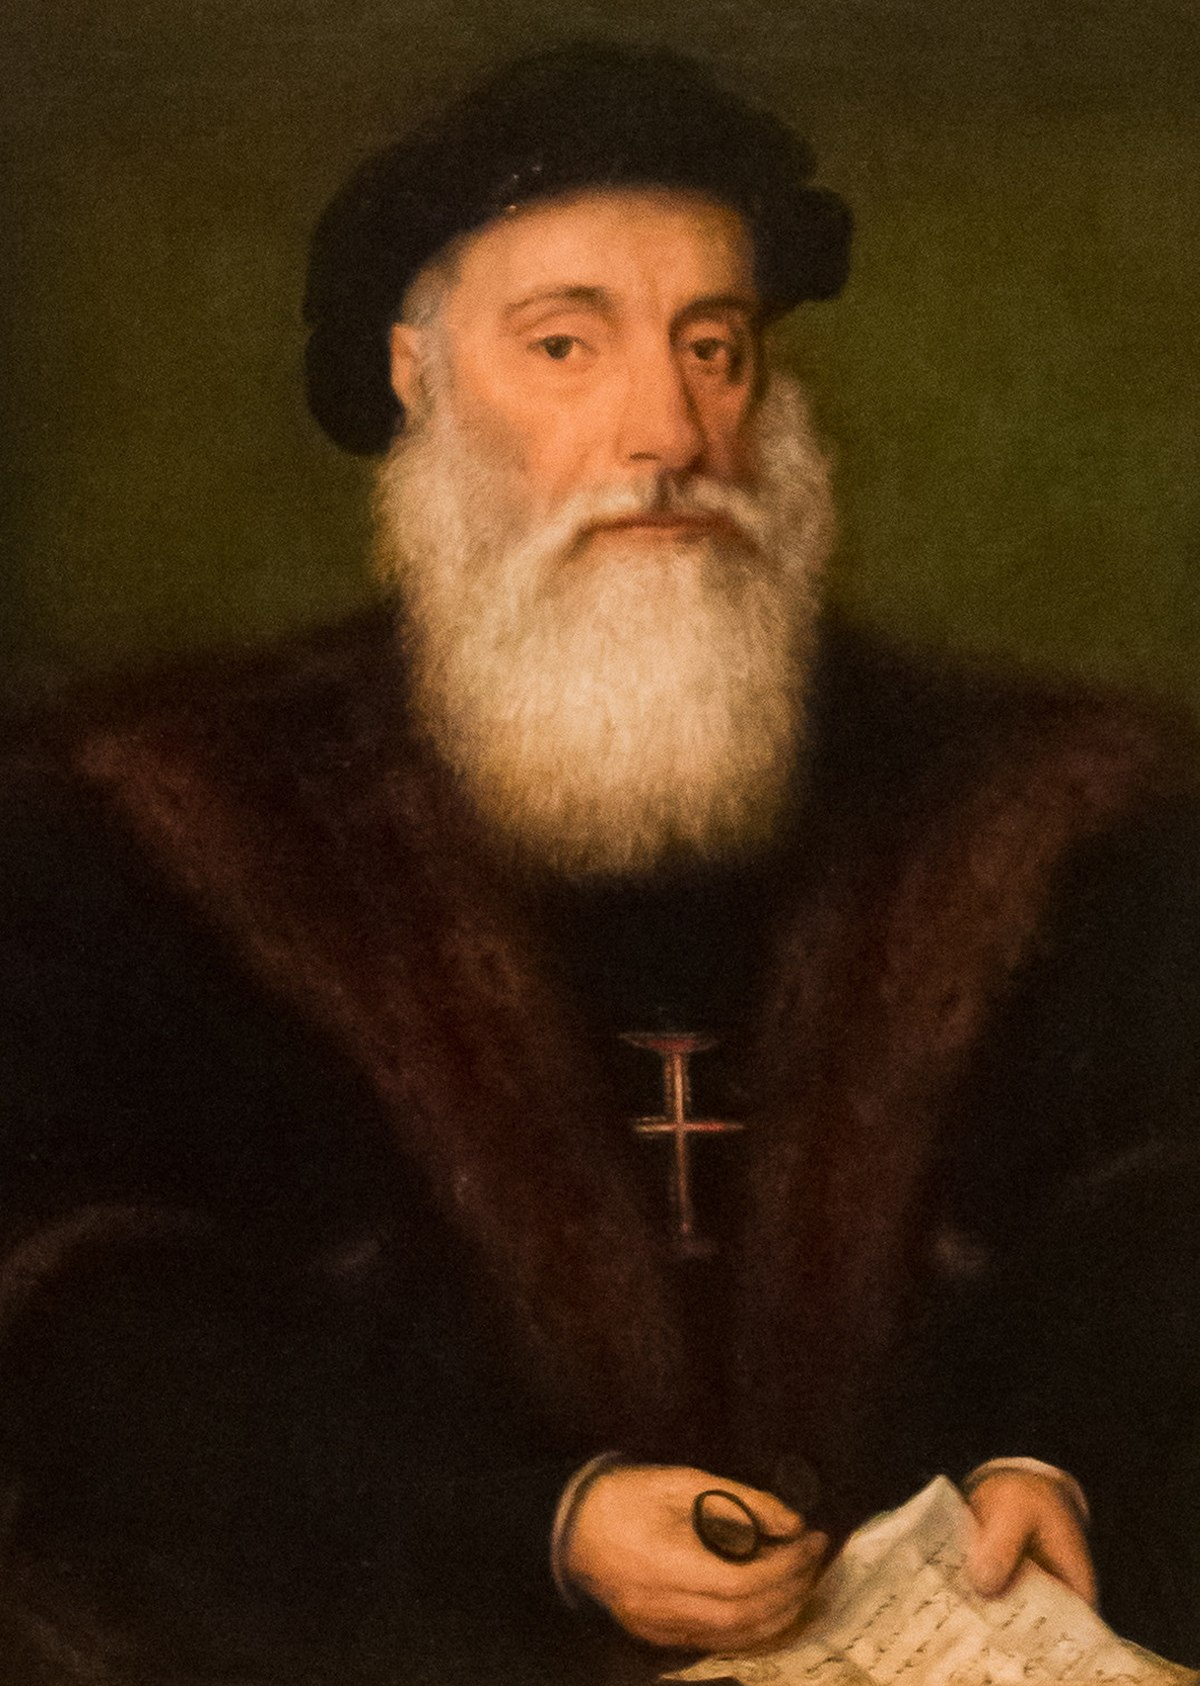 An introduction to the history of vasco da gama